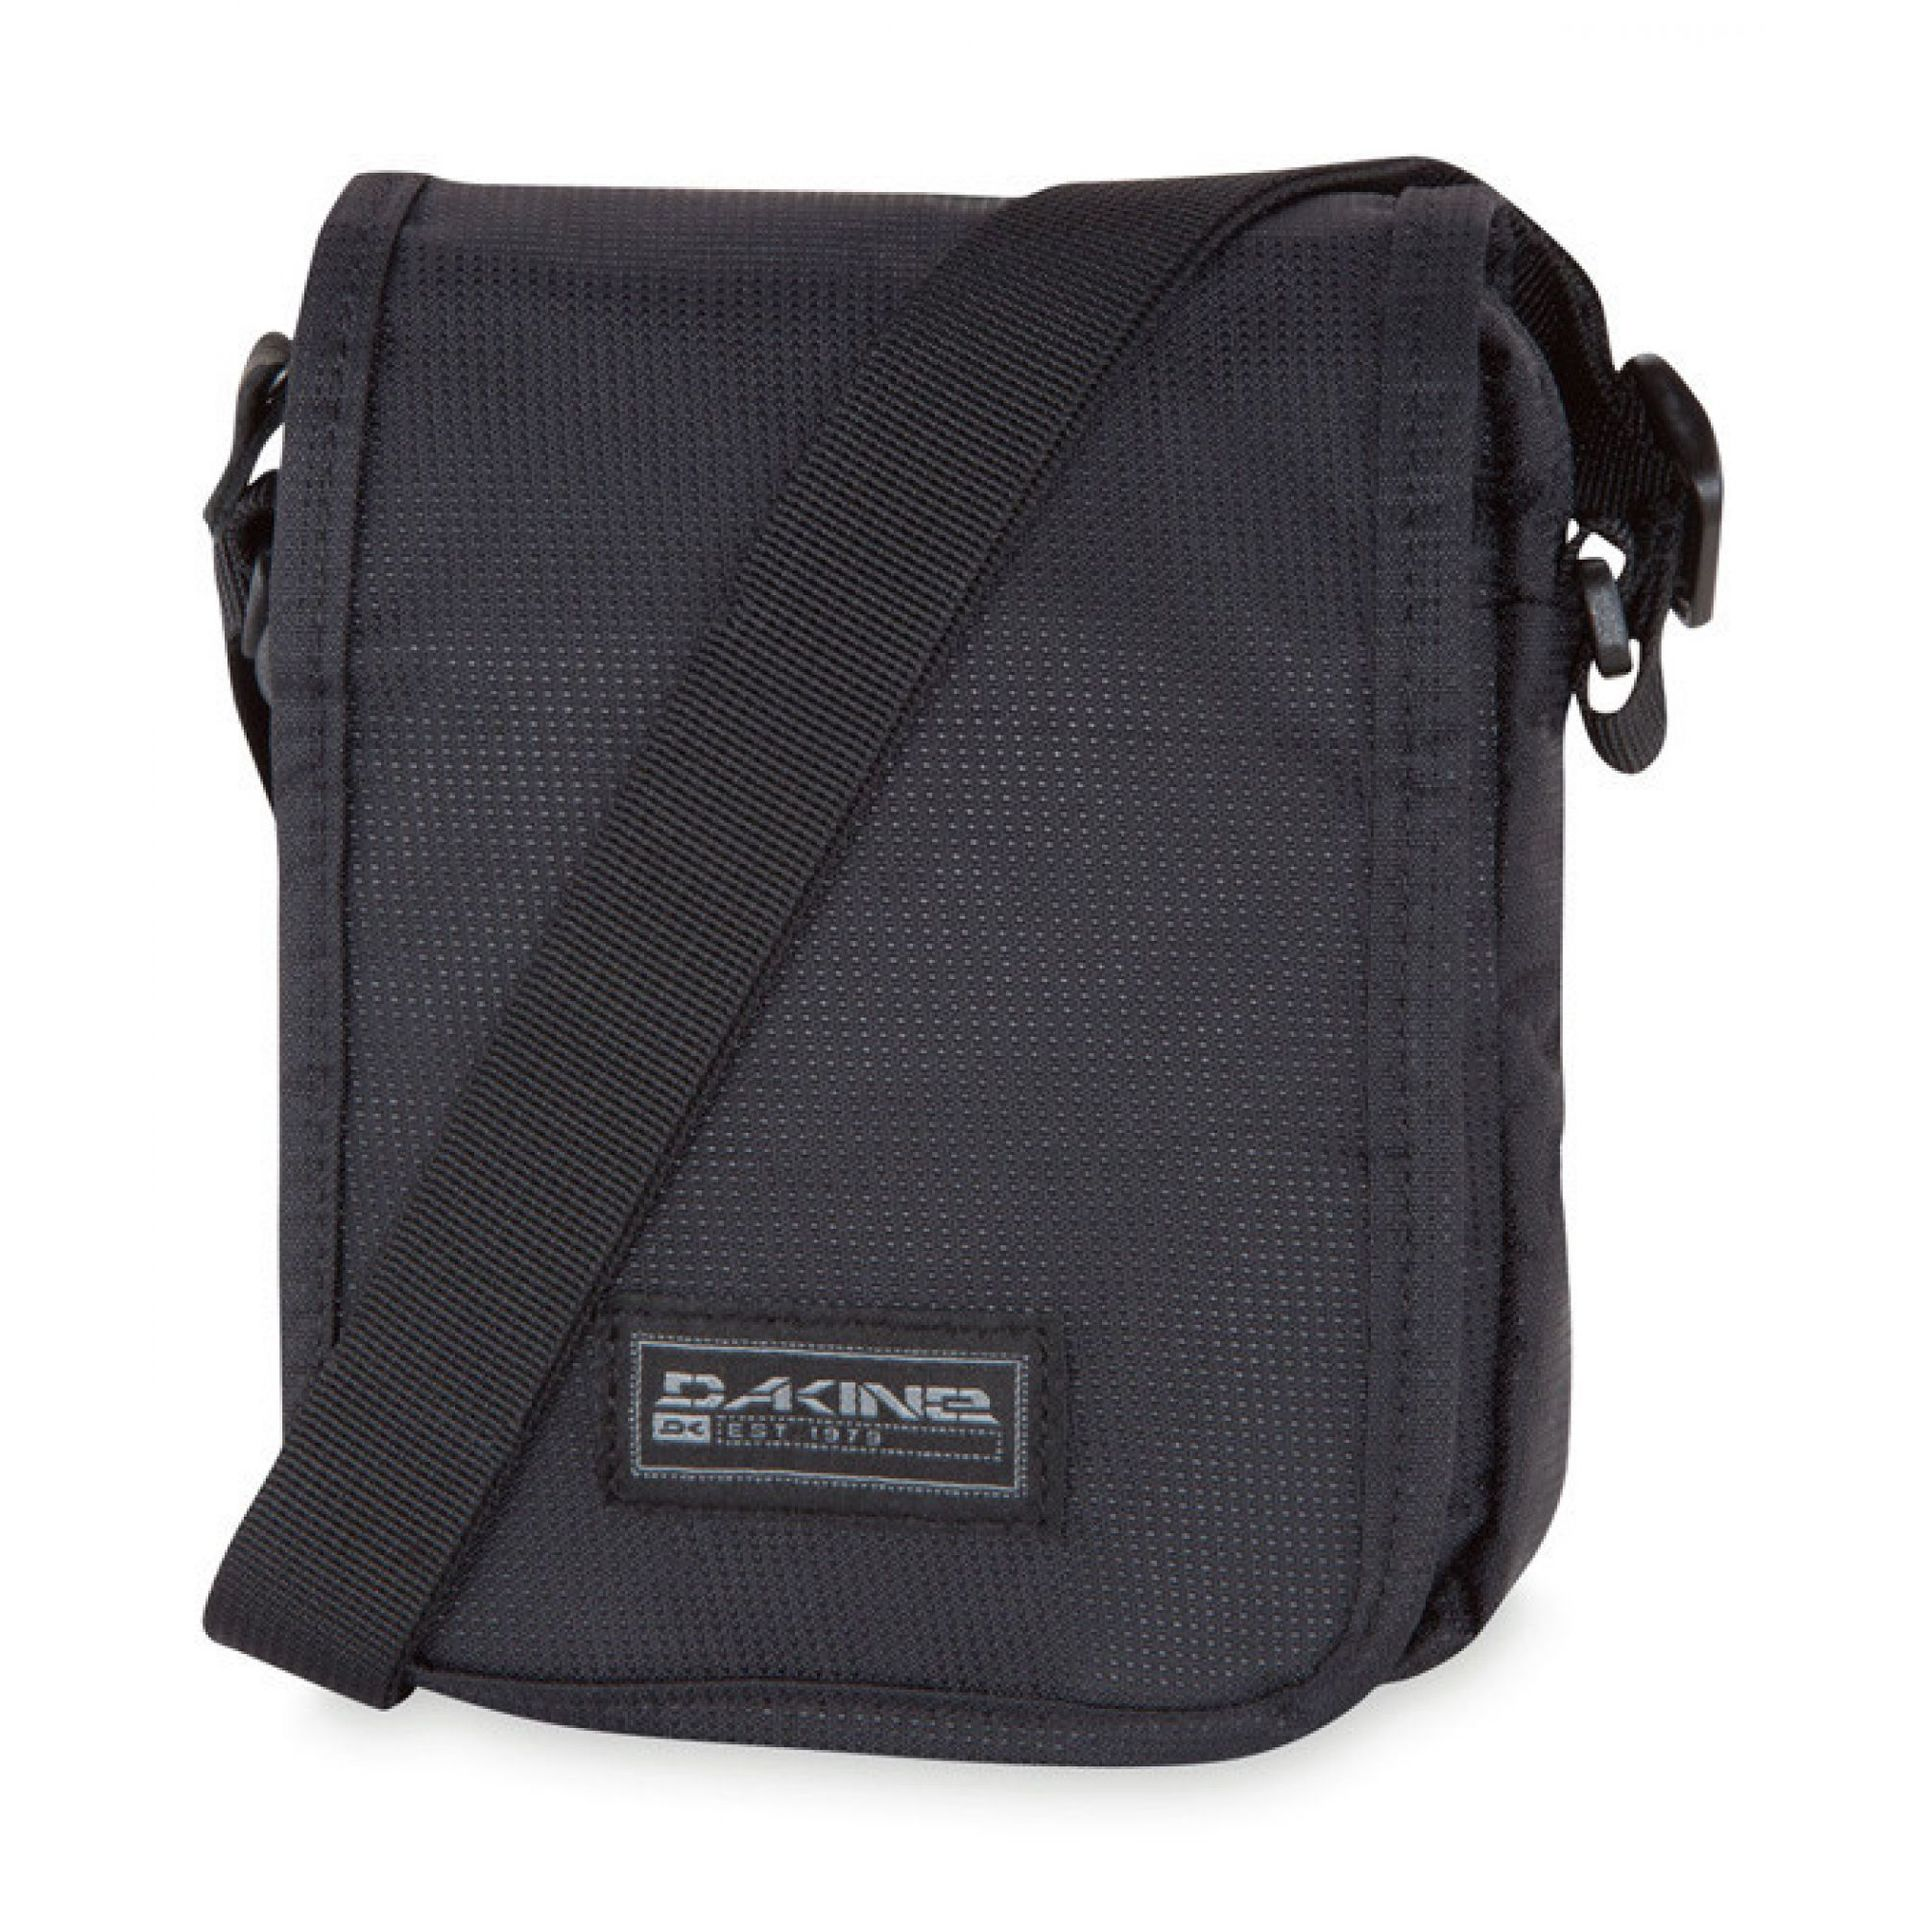 Torba Dakine Passport black